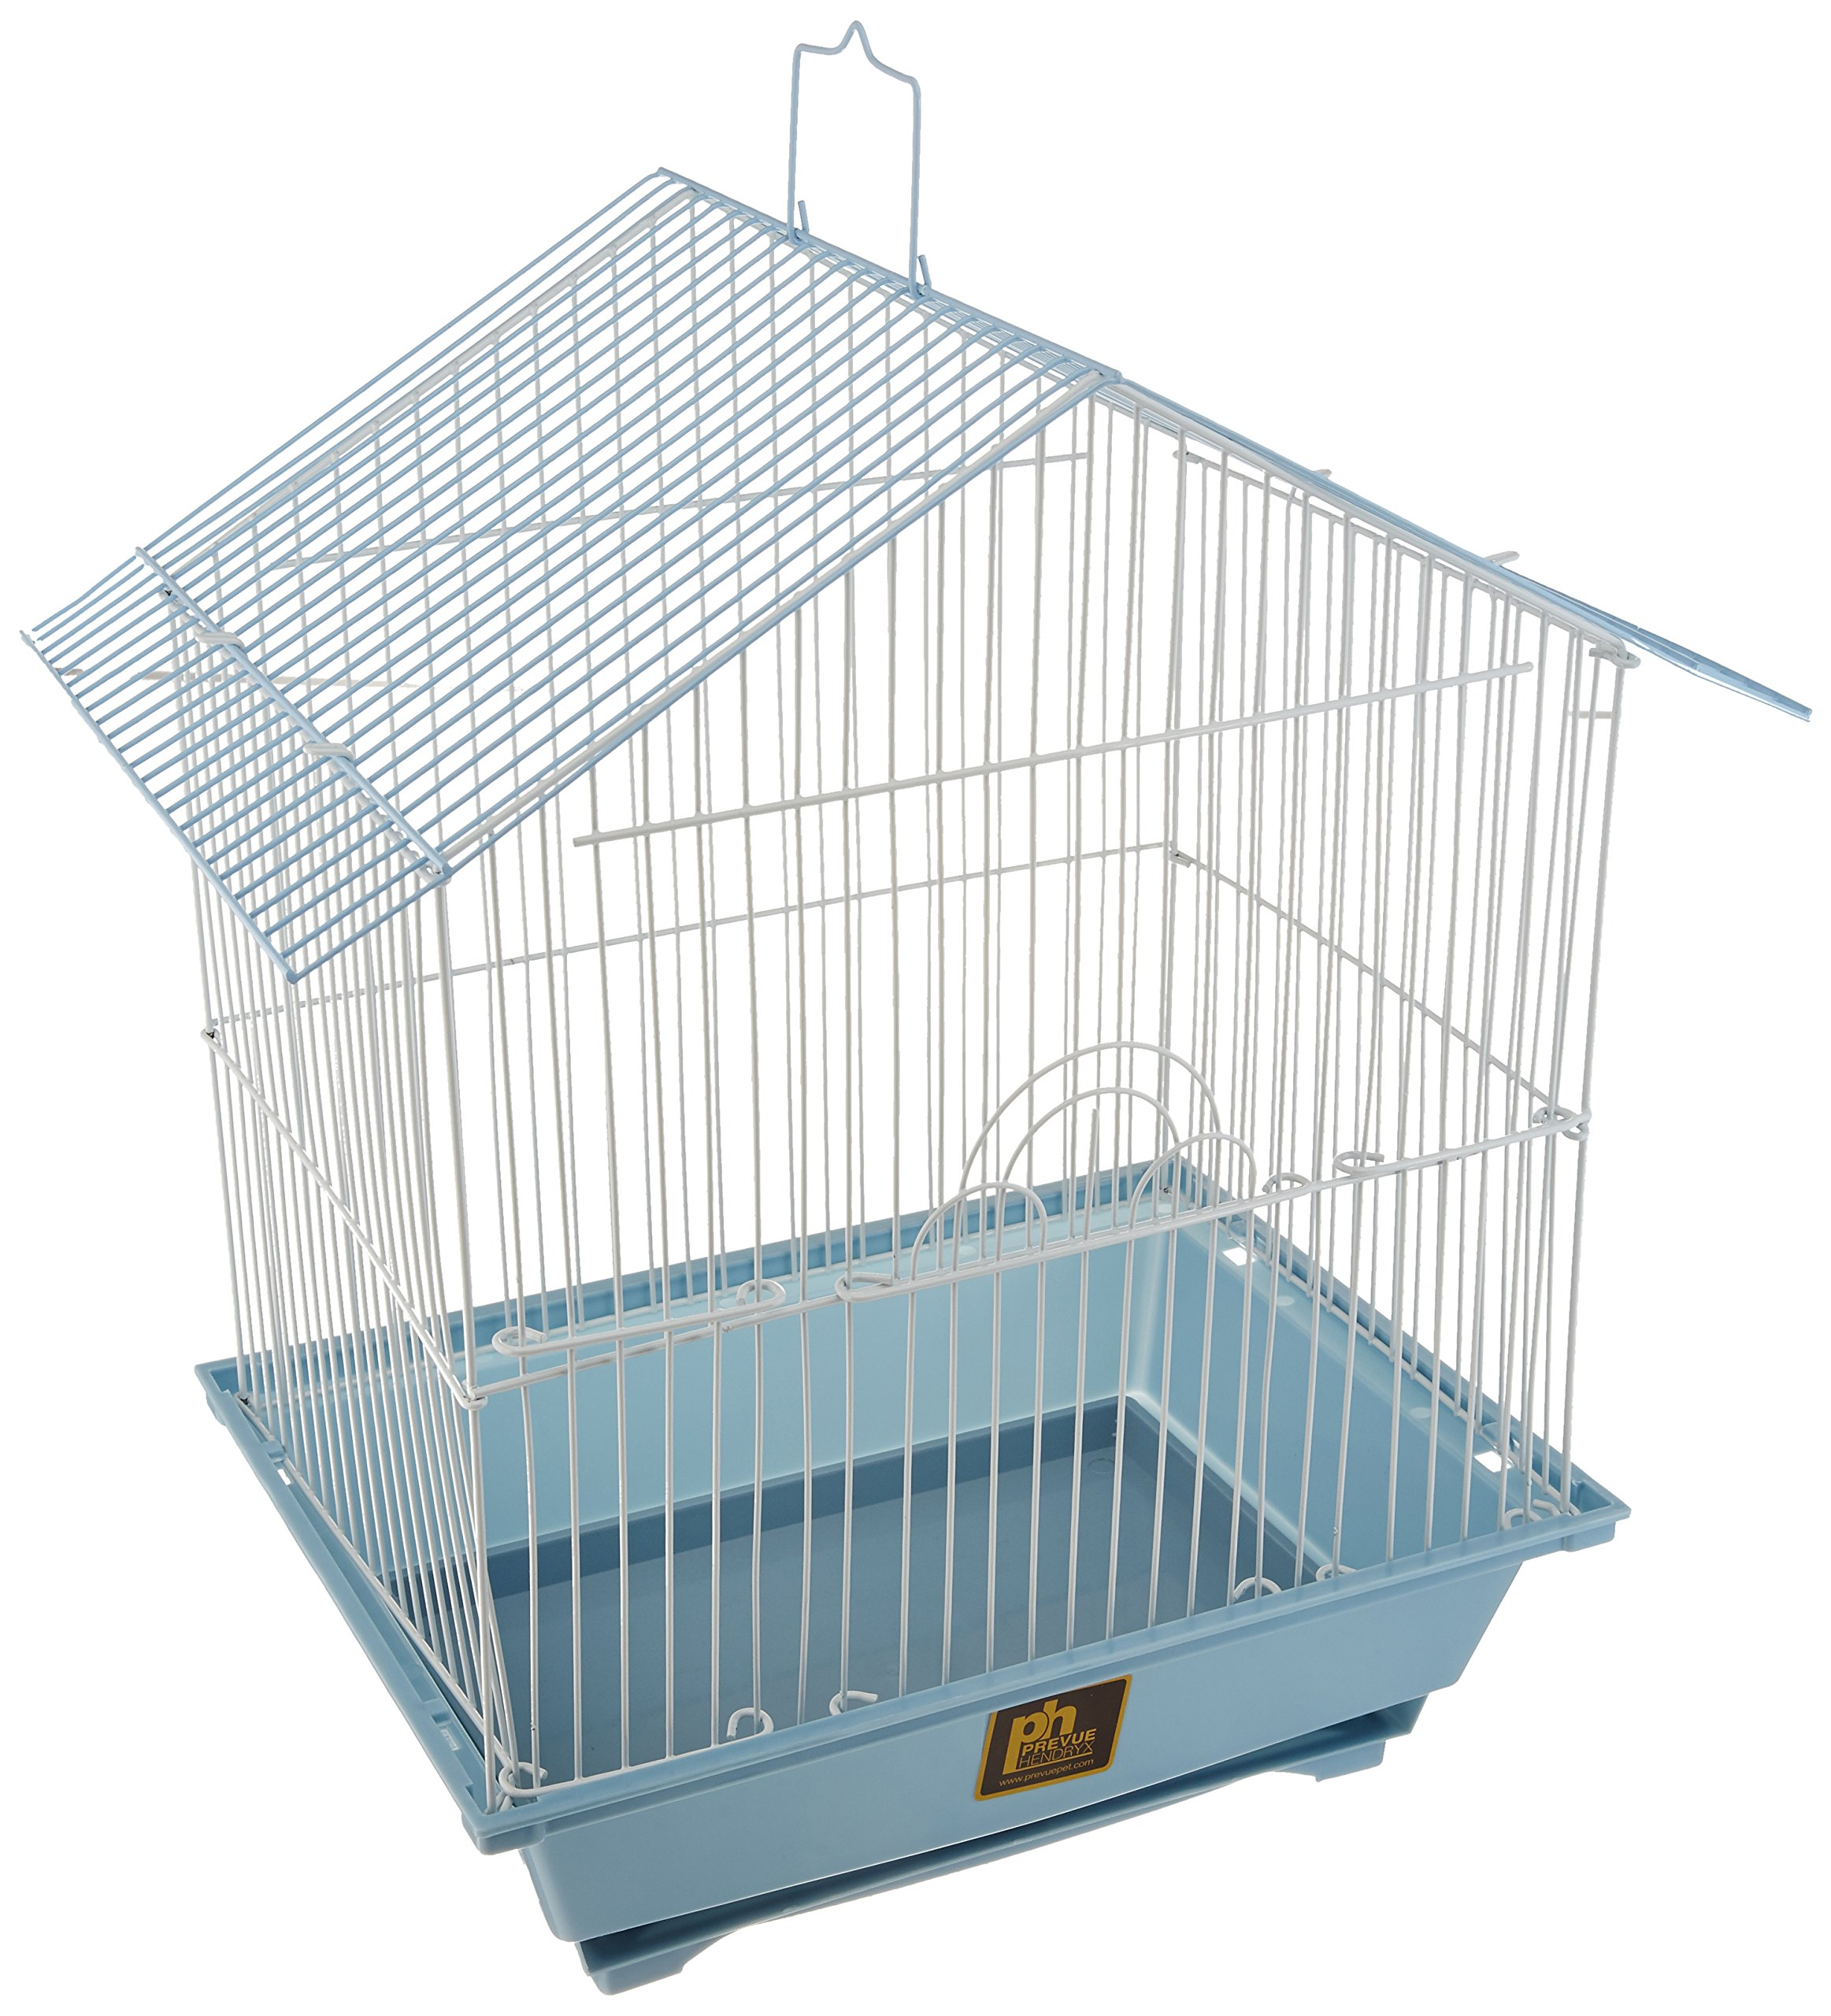 Prevue Hendryx House Style Economical Parakeet House with 2 Perches, 1 Swing and 2 Feeding Cups